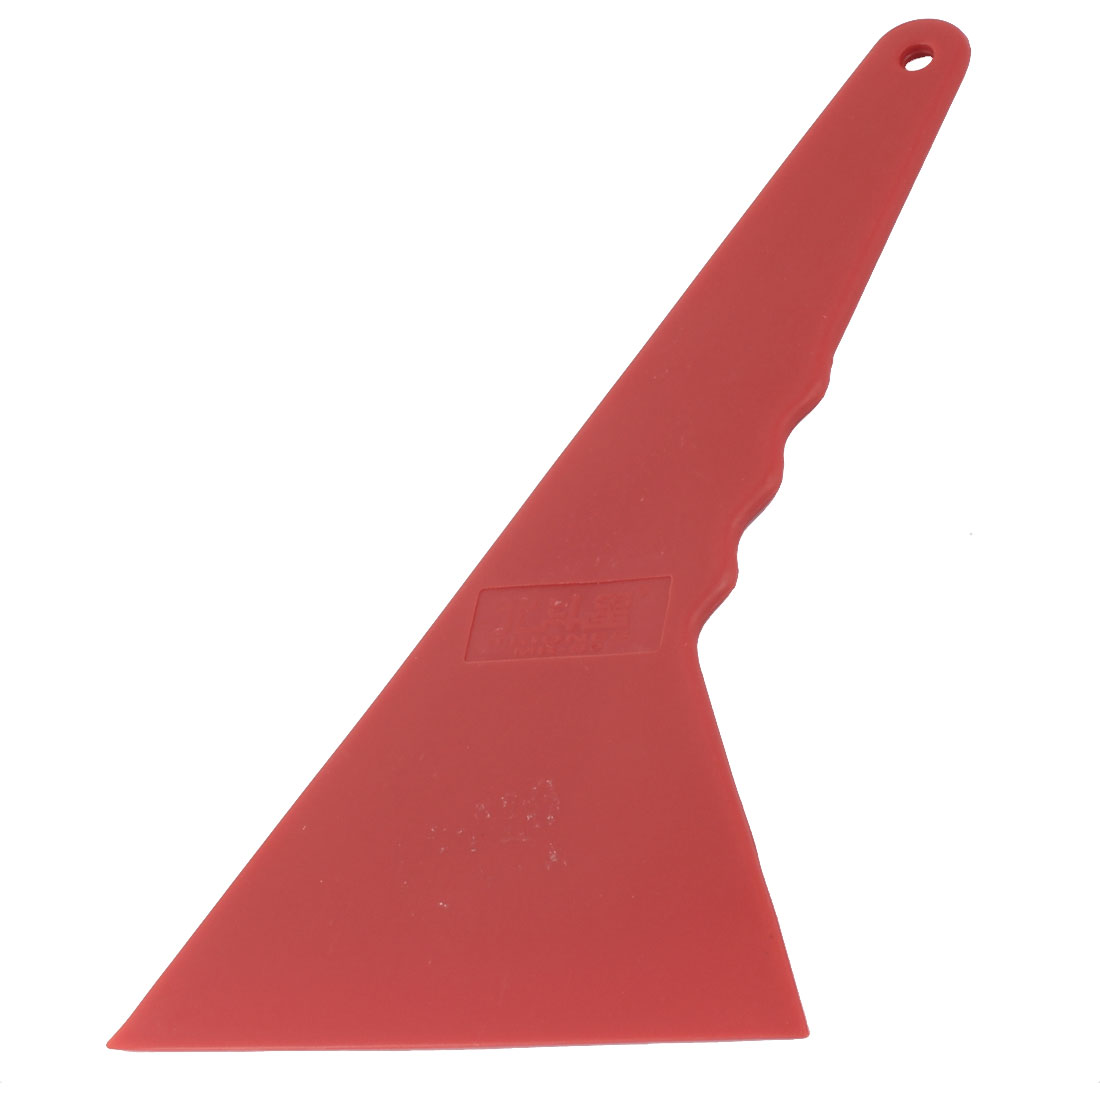 Car Window Film Wrap Tint Cleaning Scraper Tinting Tool Red 25 x 12 x 0.5cm